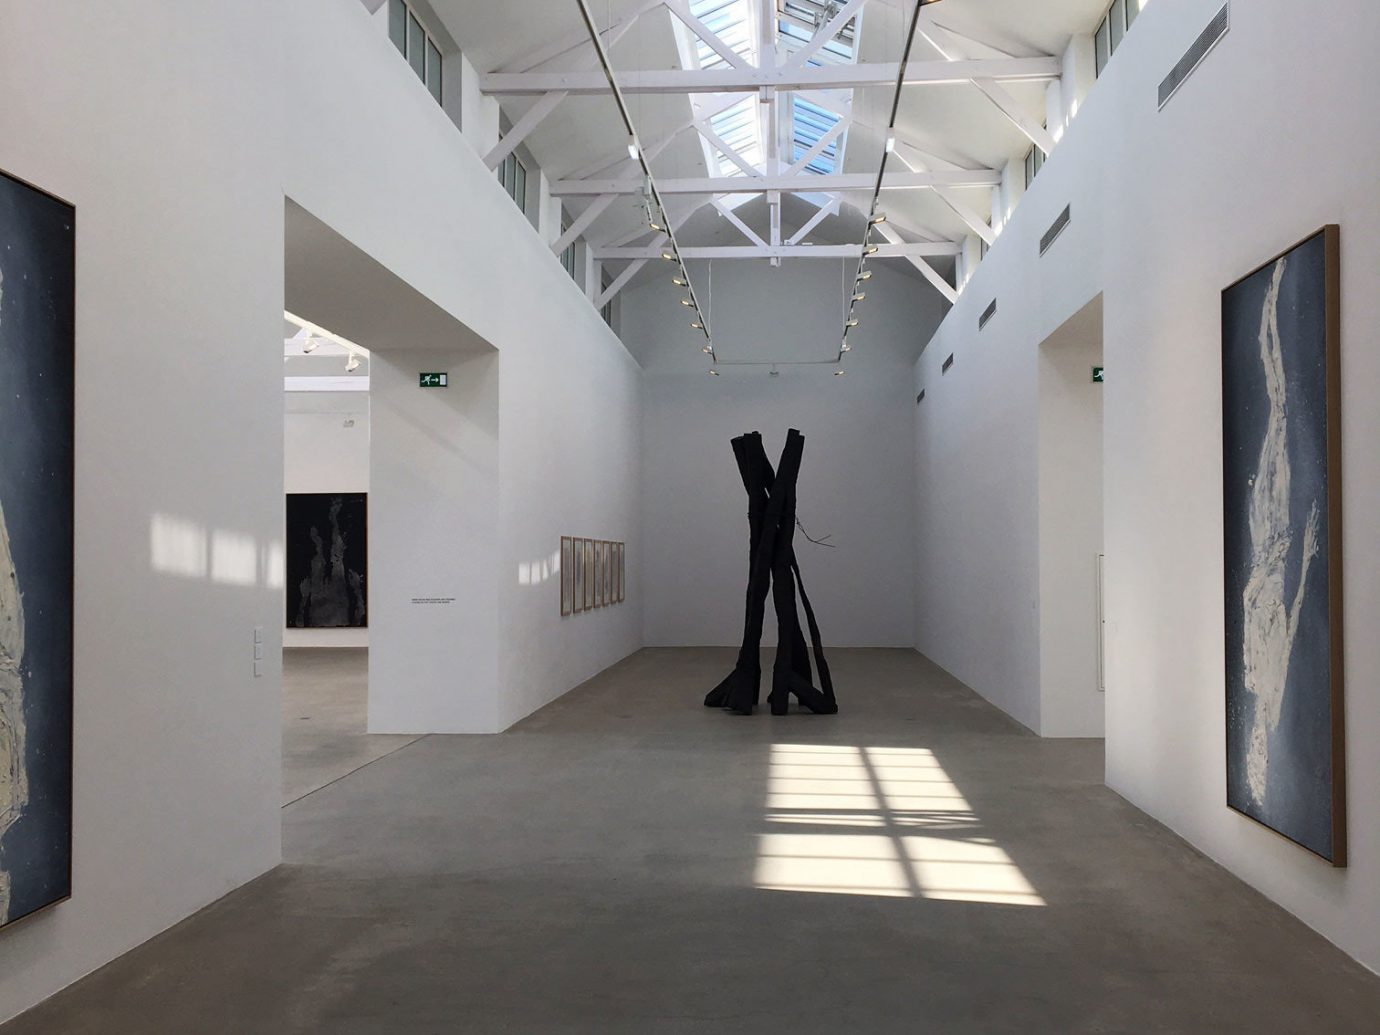 Interior view of Galerie Thaddaeus Ropac